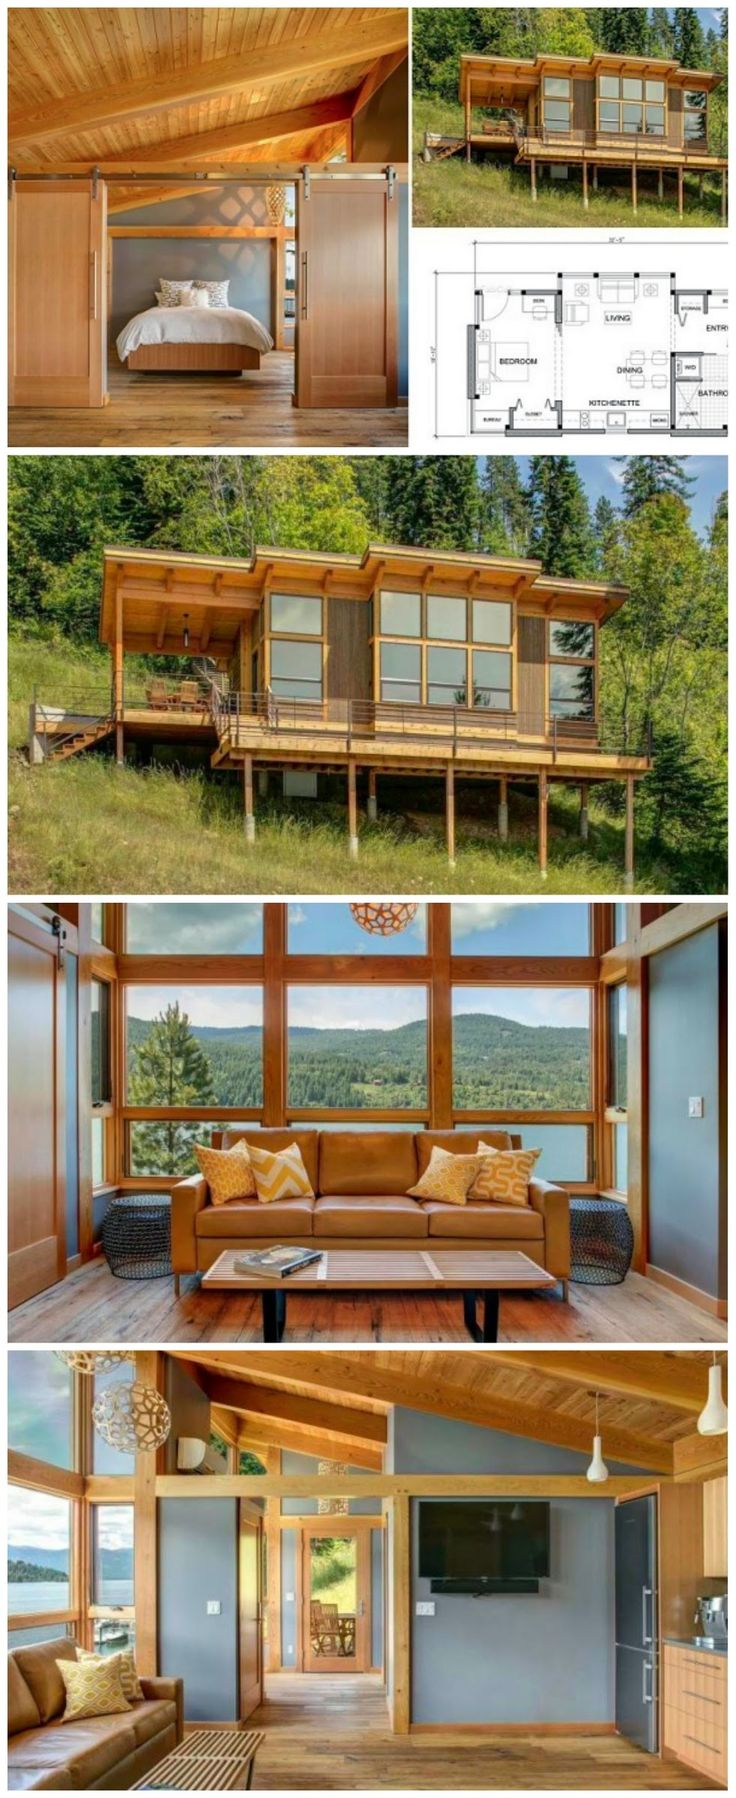 Foto: 550 Sq. Ft. Prefab Timber Cabin  See more here ->http://www.goodshomedesign.com/550-sq-ft-prefab-timber-cabin/